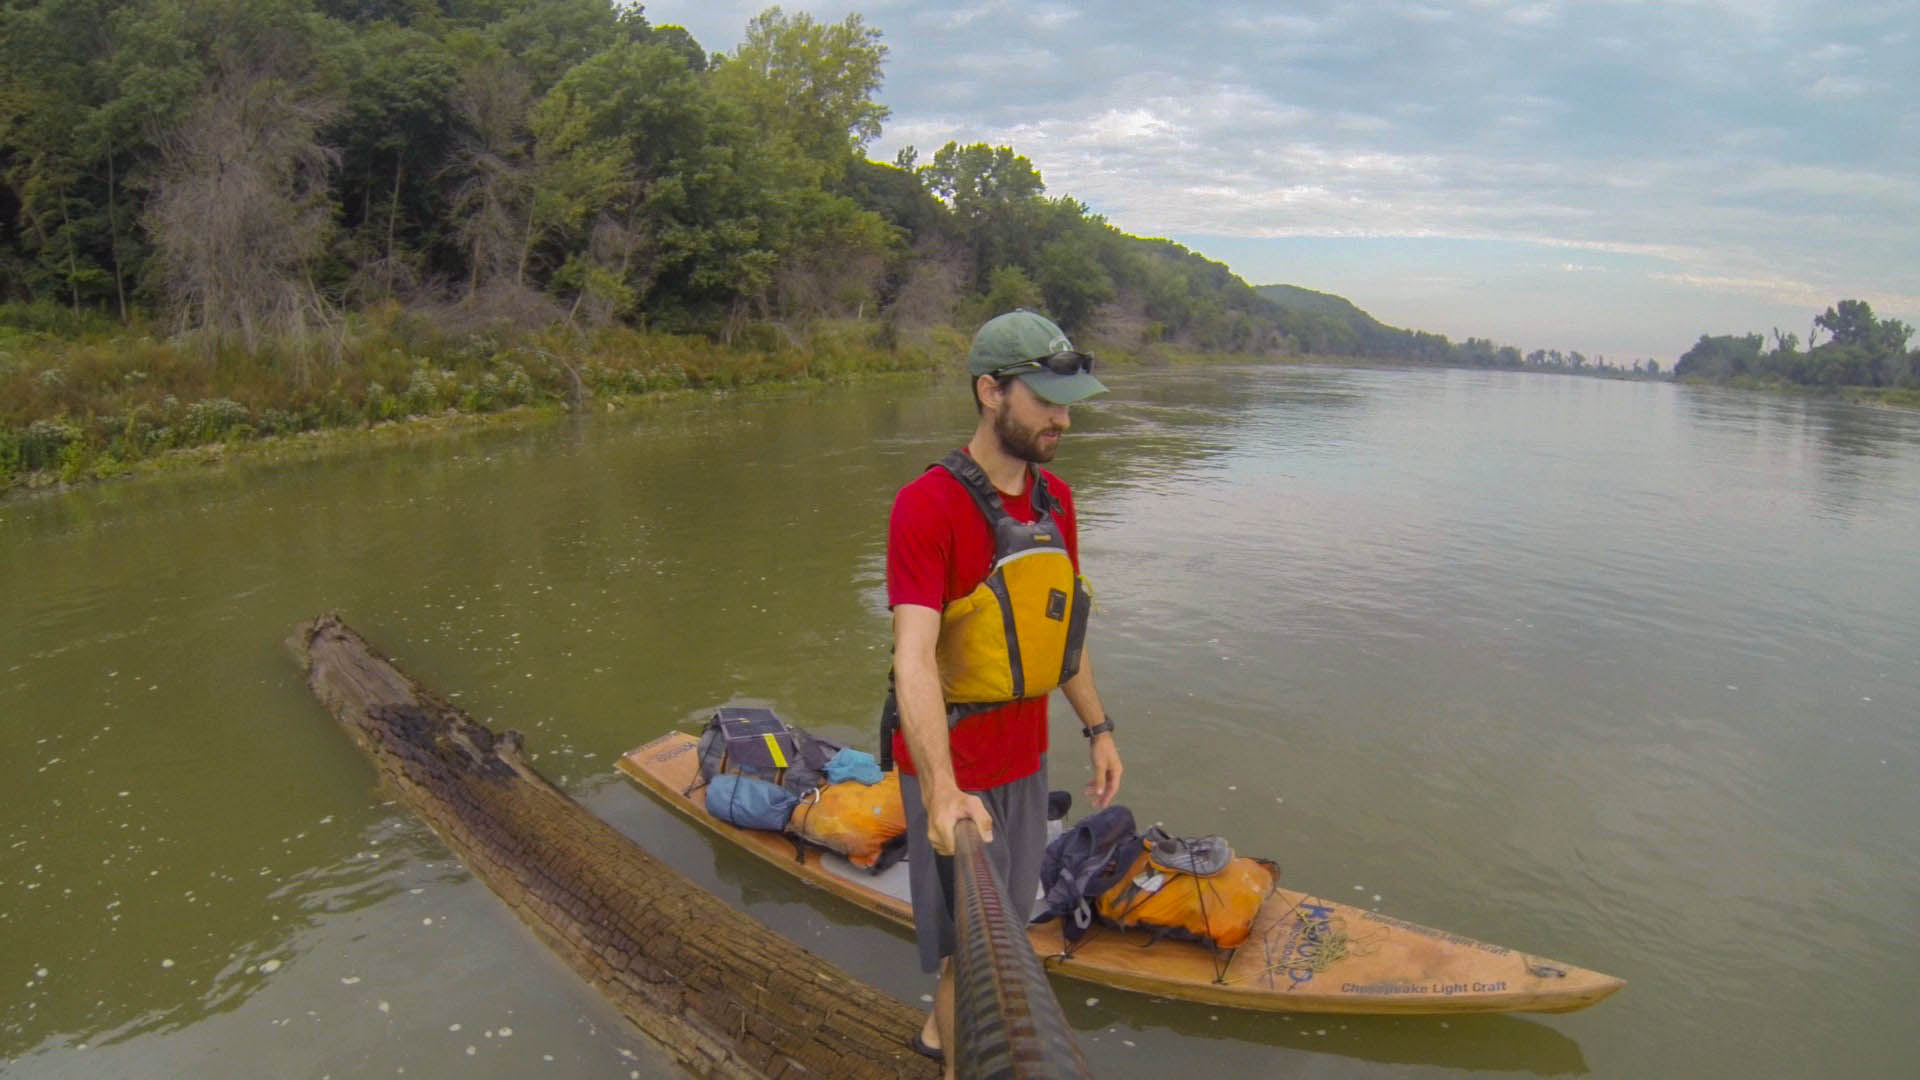 Stand Up Paddling The Missouri River